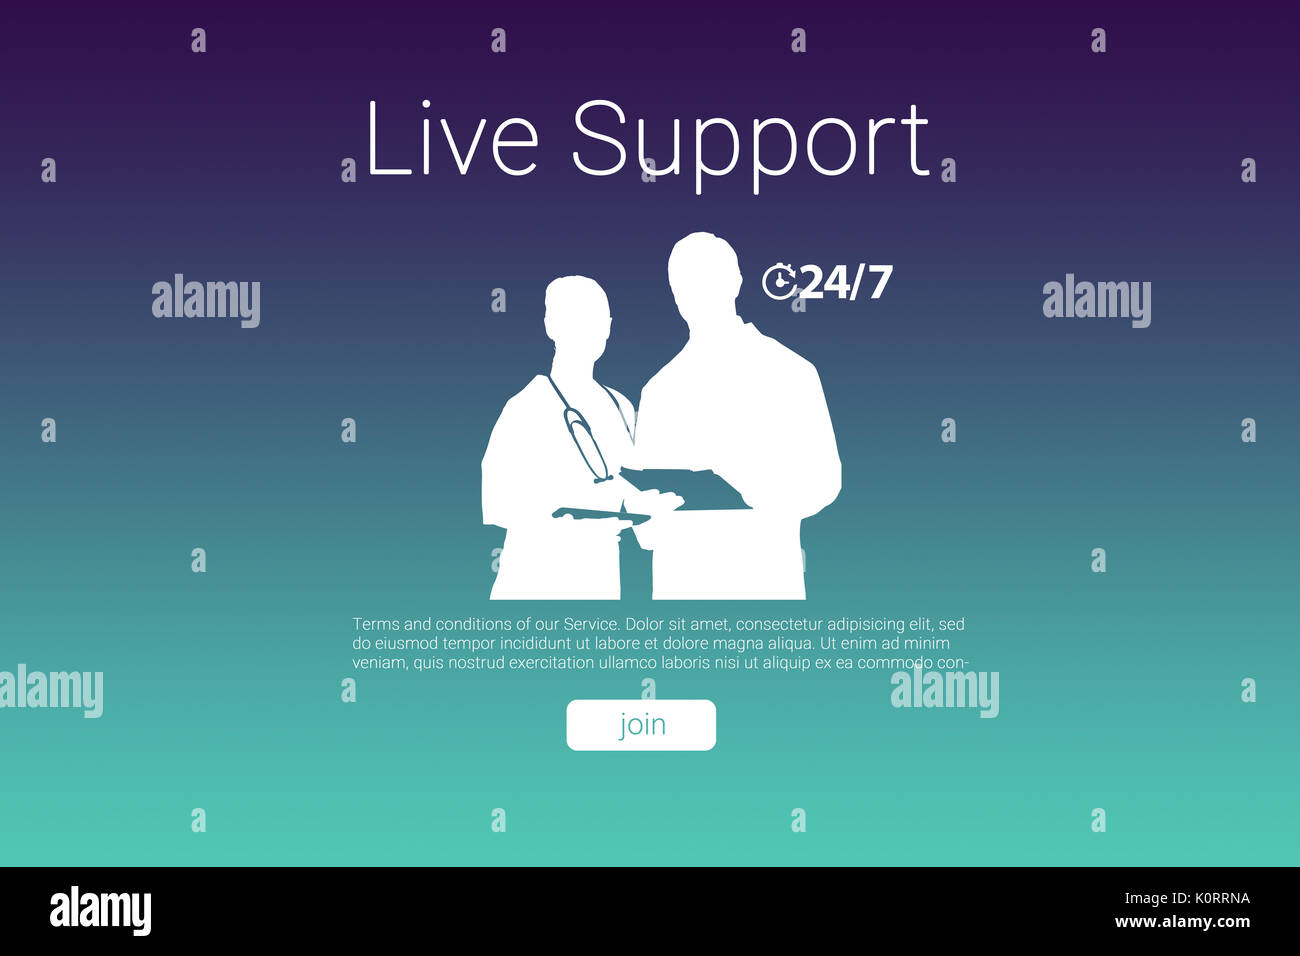 Live support text with human representations against turquoise and purple background Stock Photo